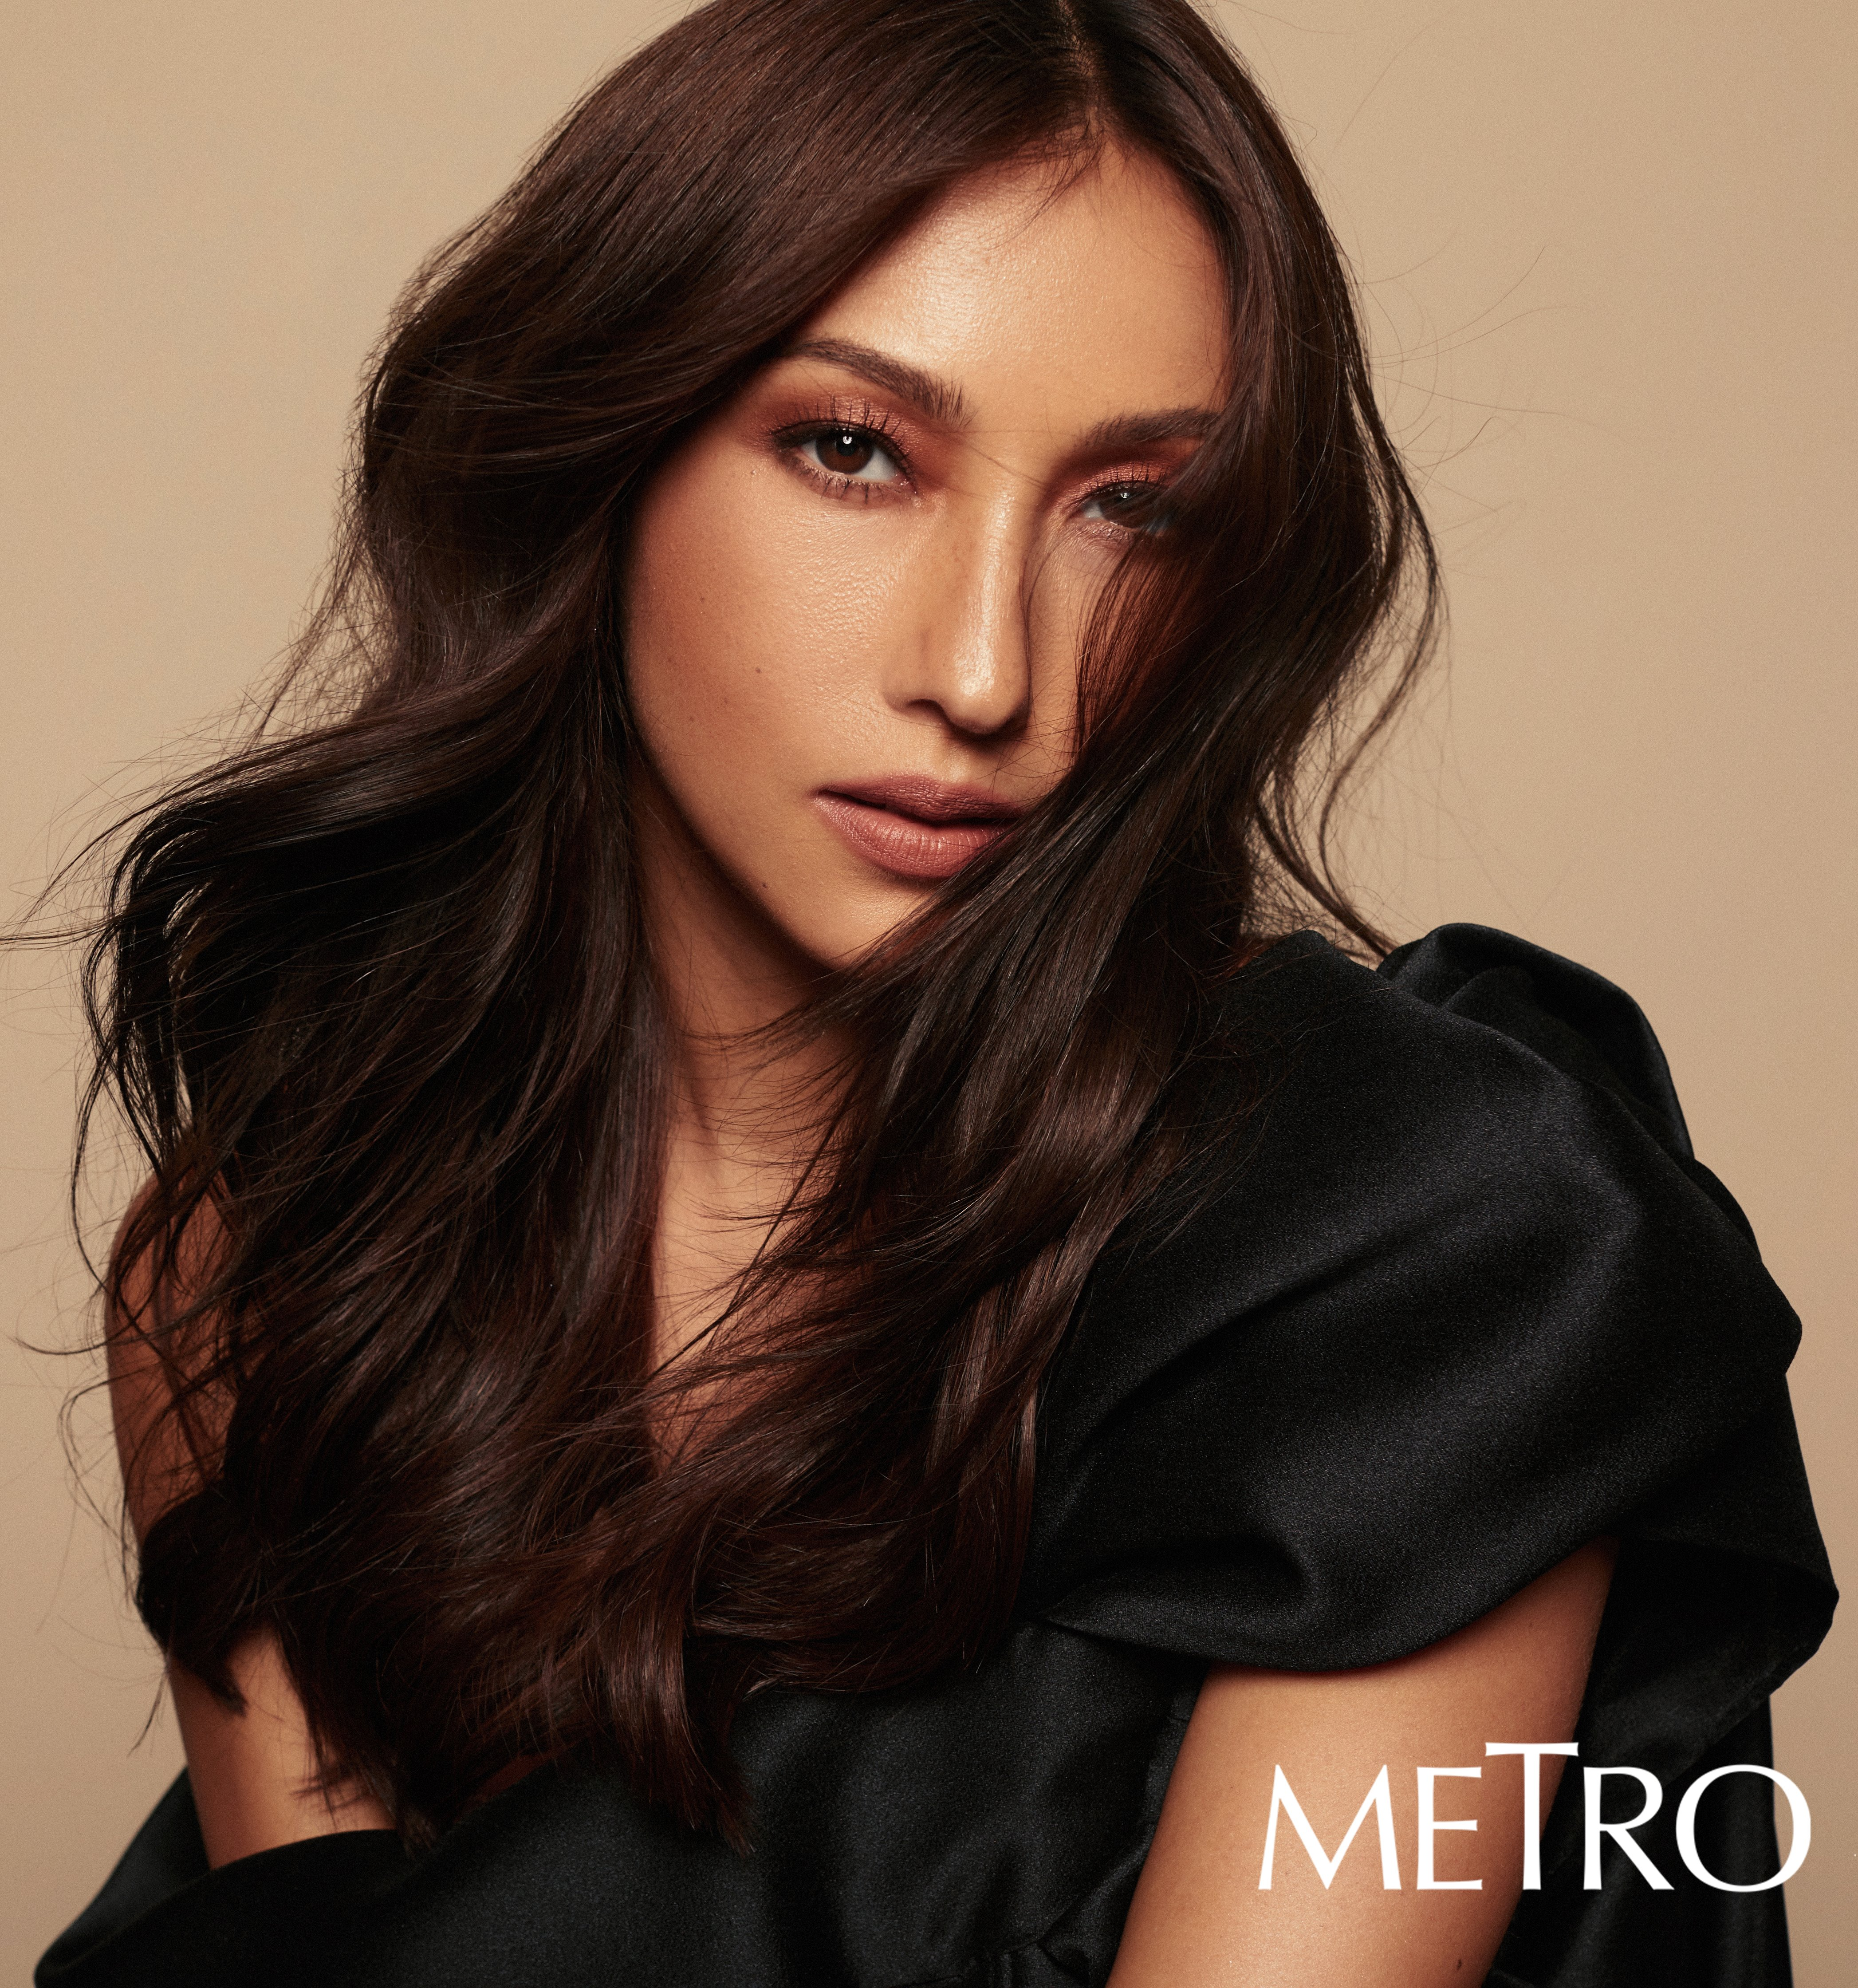 Solenn Heussaff on the digital cover of Metro.Style for Metro's 30th anniversary.